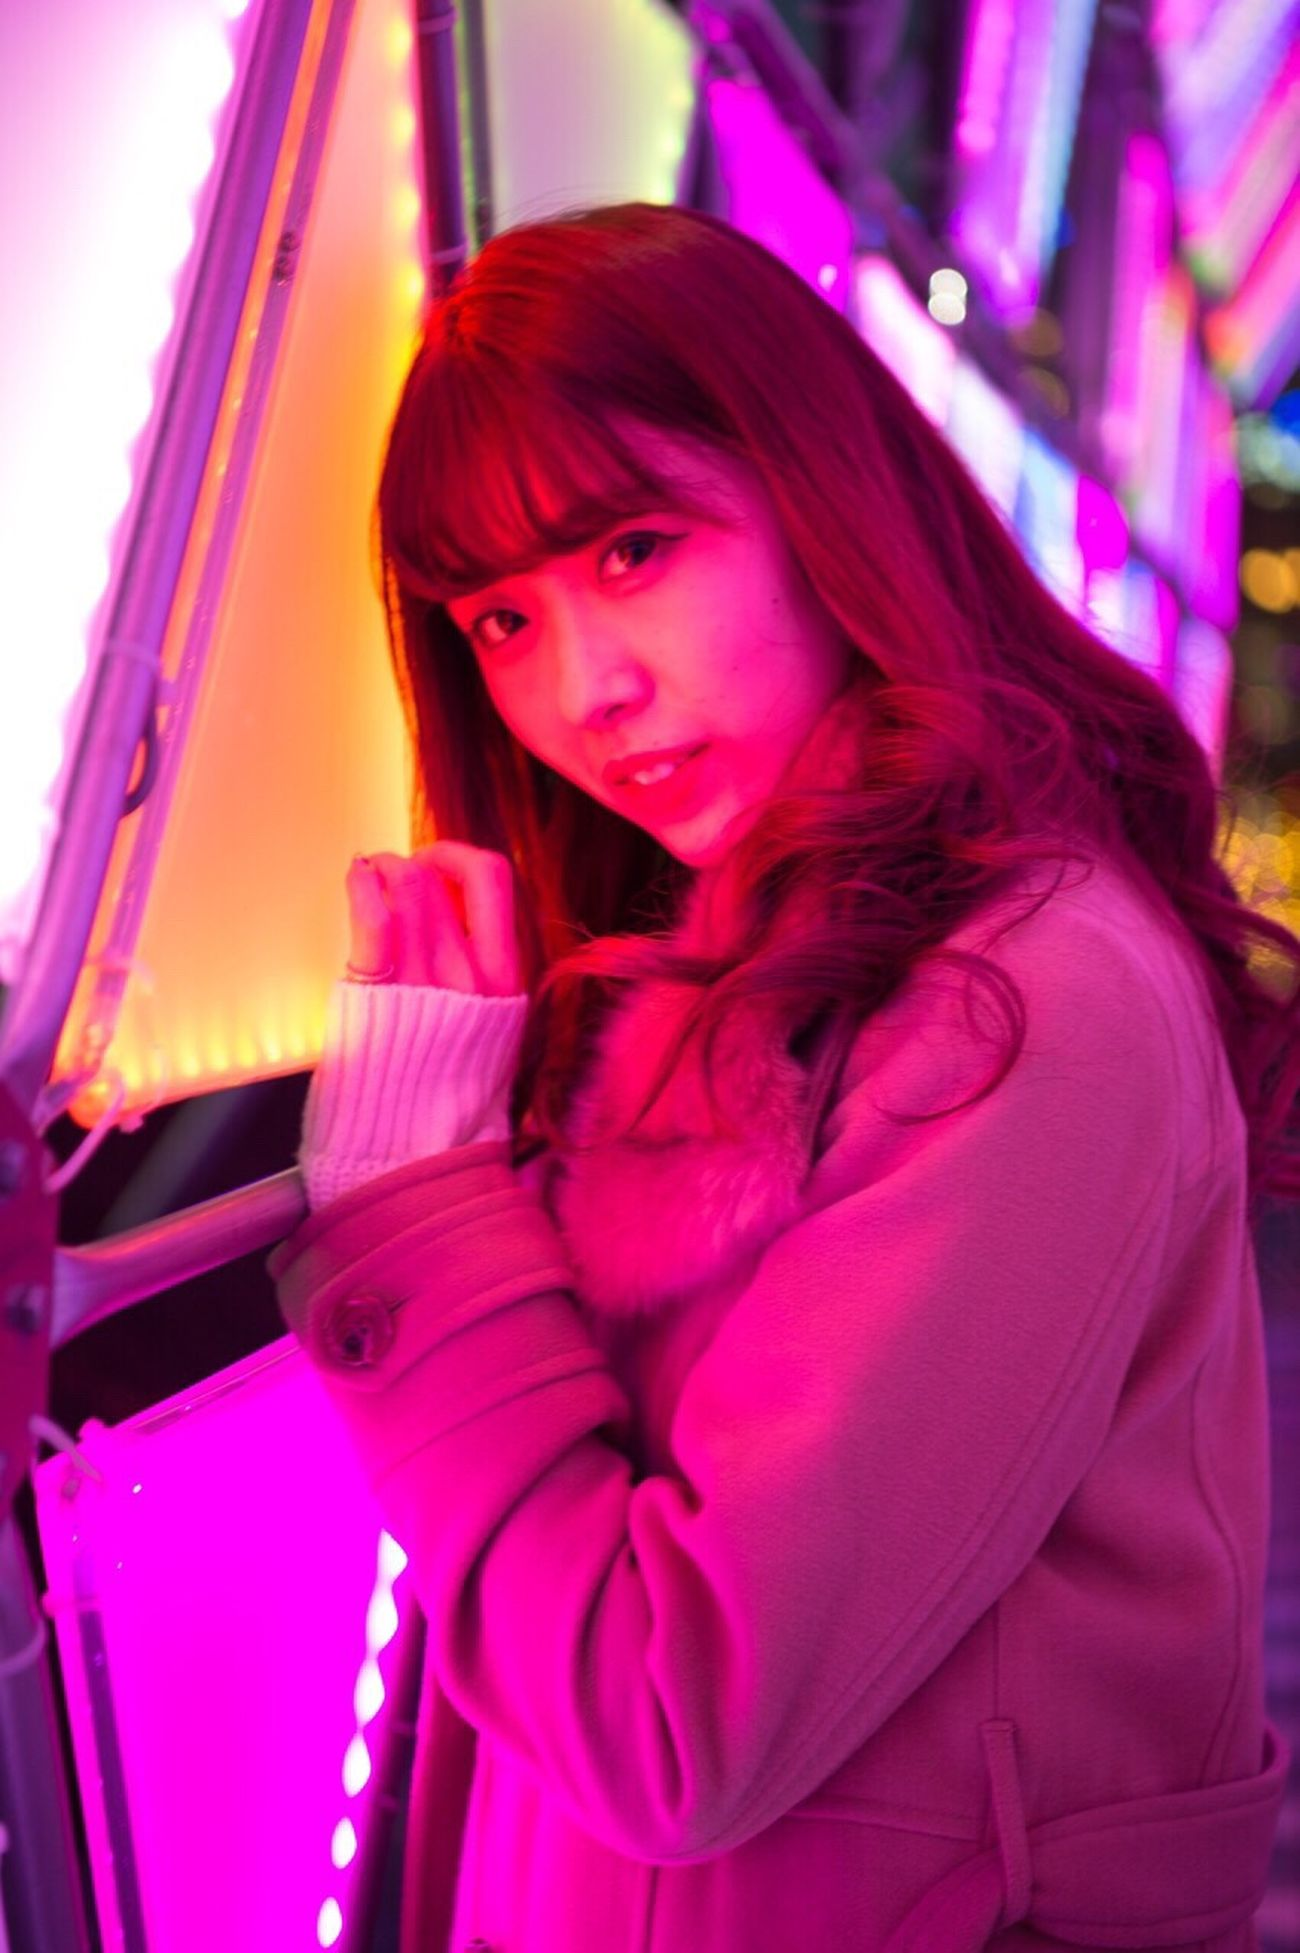 All The Neon Lights LaQua One Wild Night Ctiy Nikon My Winter Favorites Tokyo Japan Cool Japan Freelance Life It's Cold Outside Creative Light And Shadow New Year Around The World Girl Portrait Striking Fashion Model KAWAII Aoi Seeing The Sights